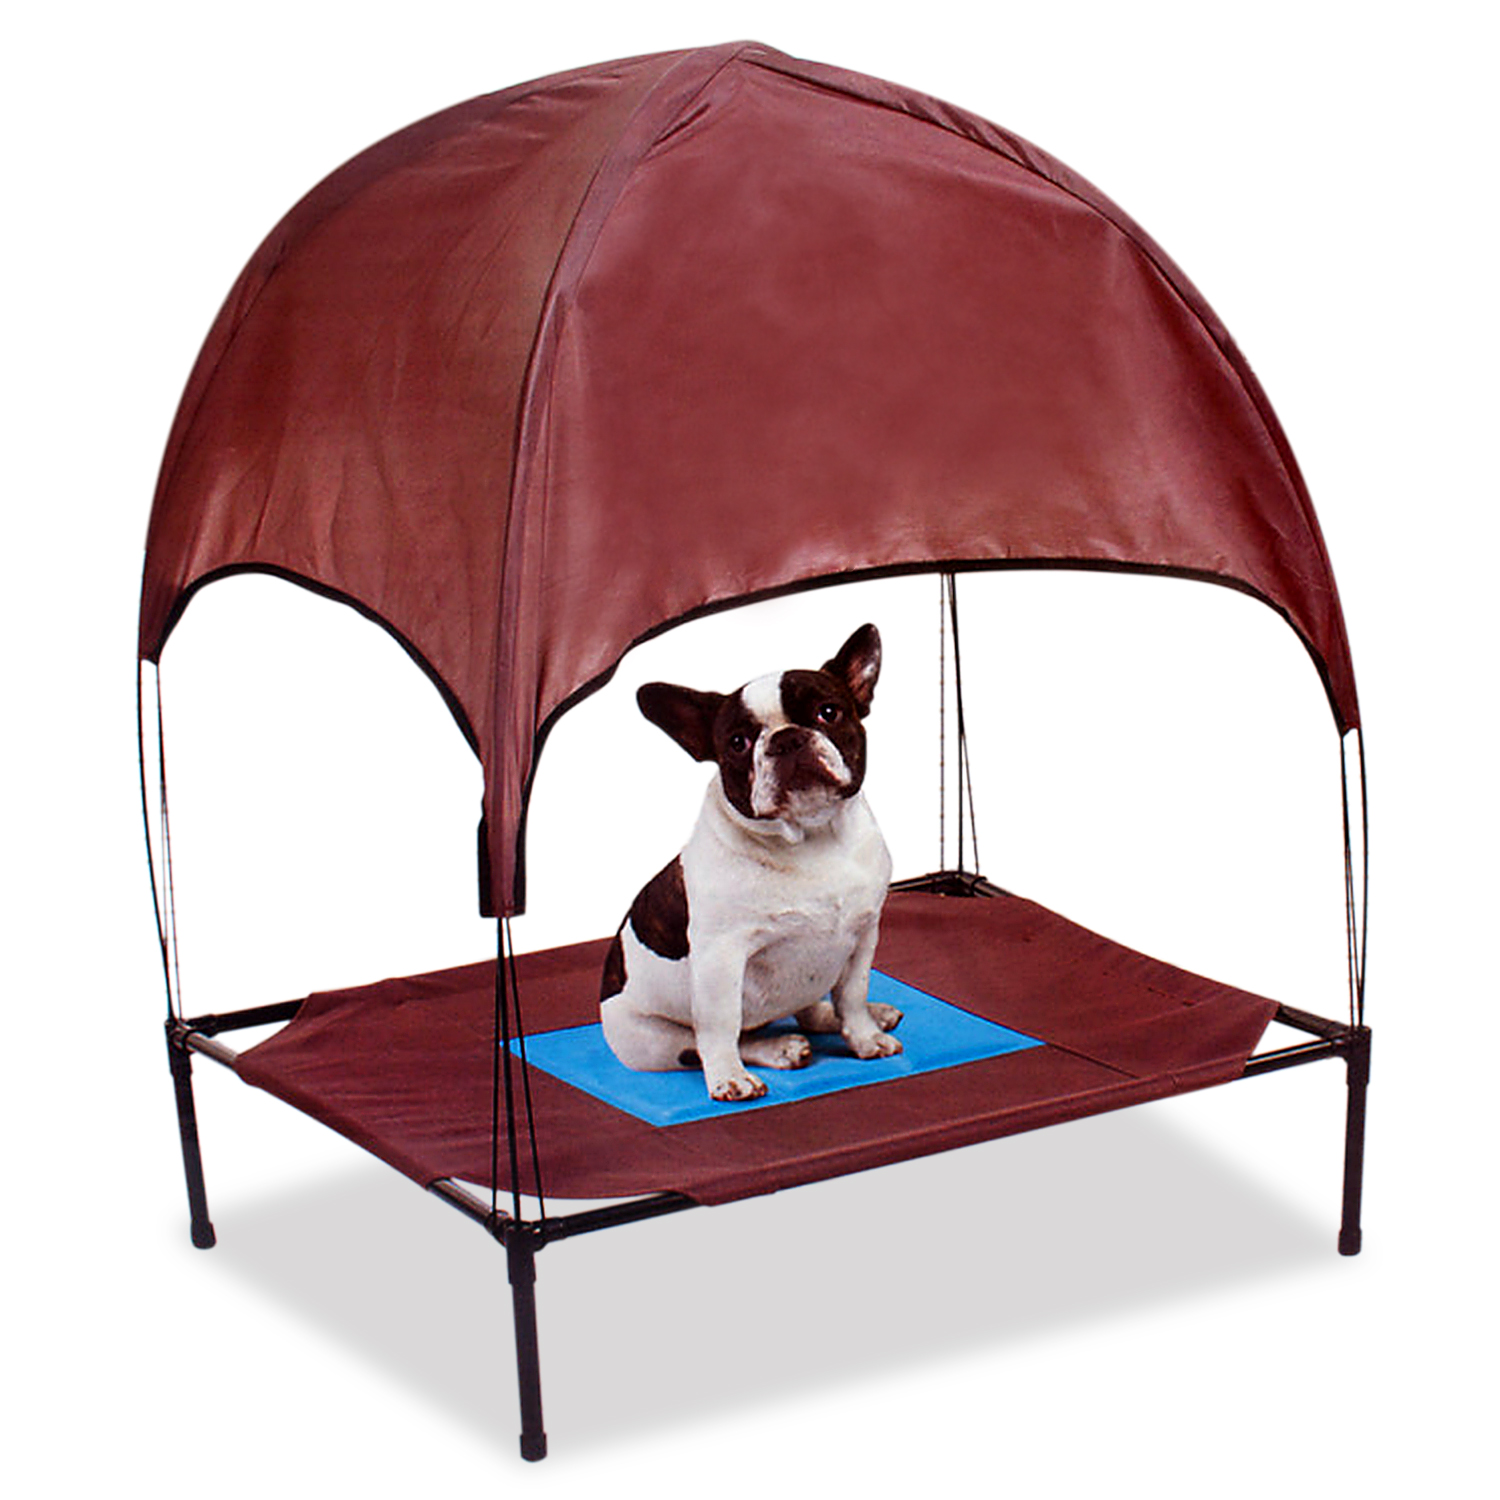 Cooling Pet Dog Cot with Removable Canopy